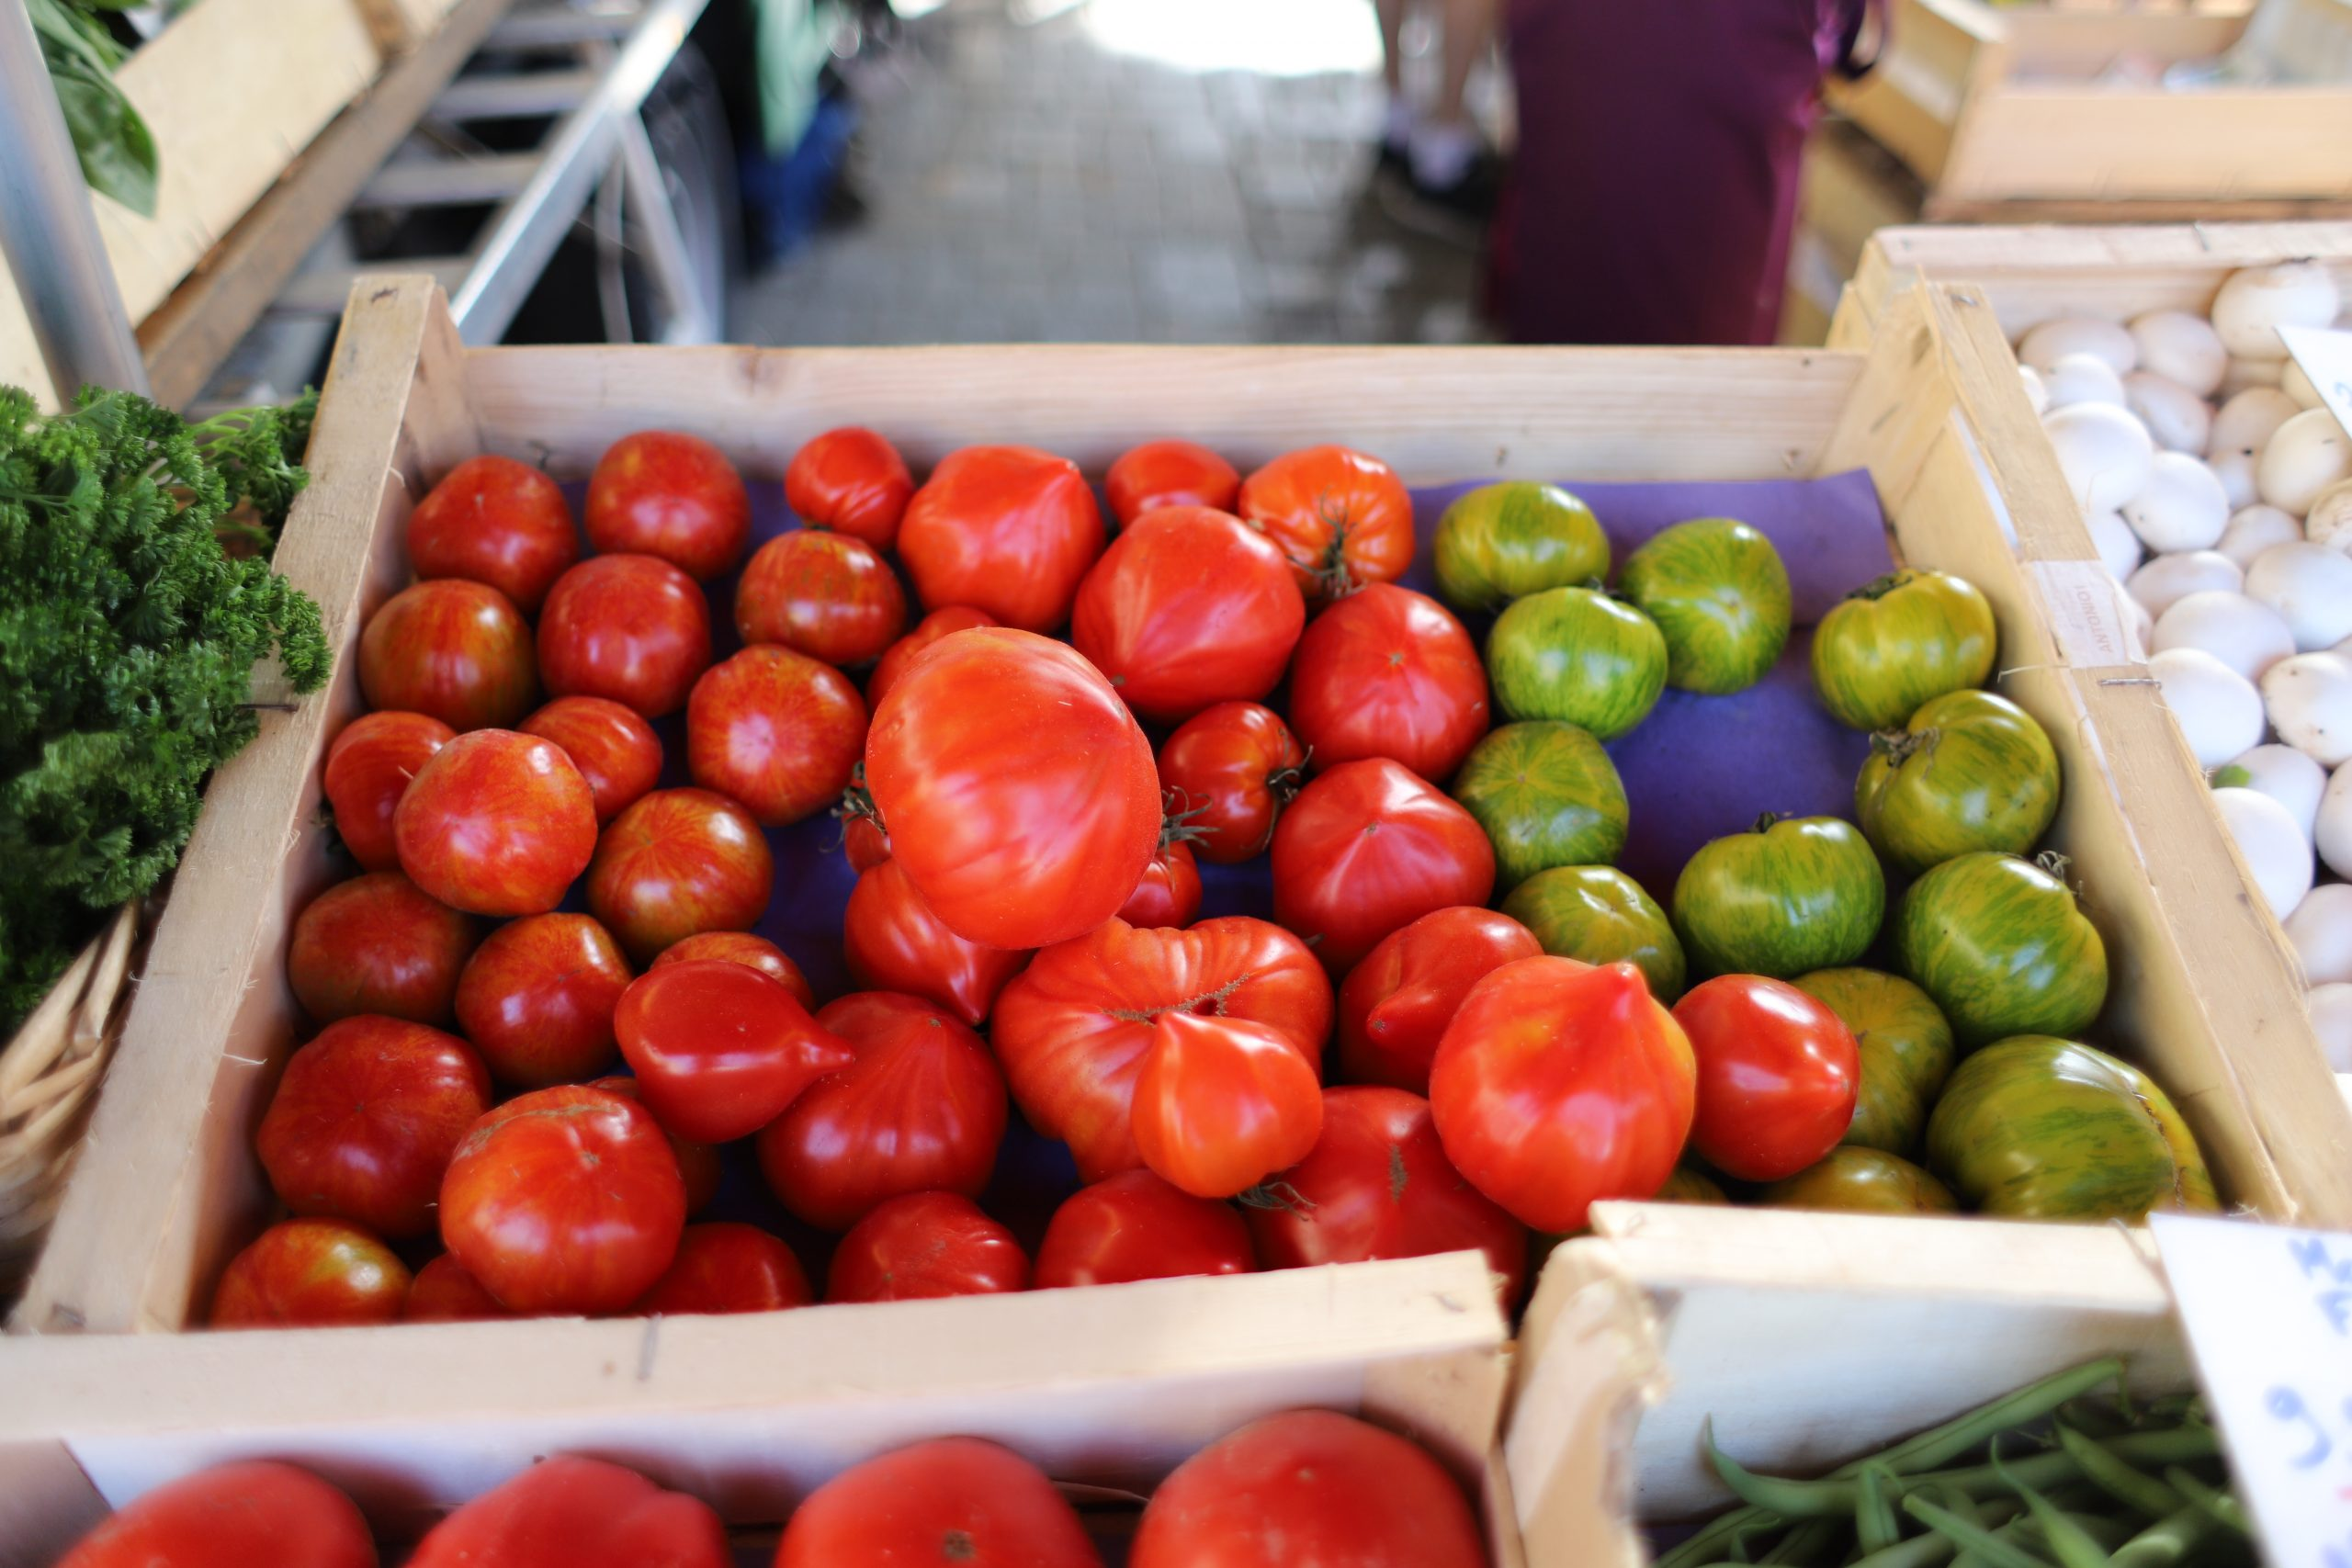 Tomatoes from Bretagne, France